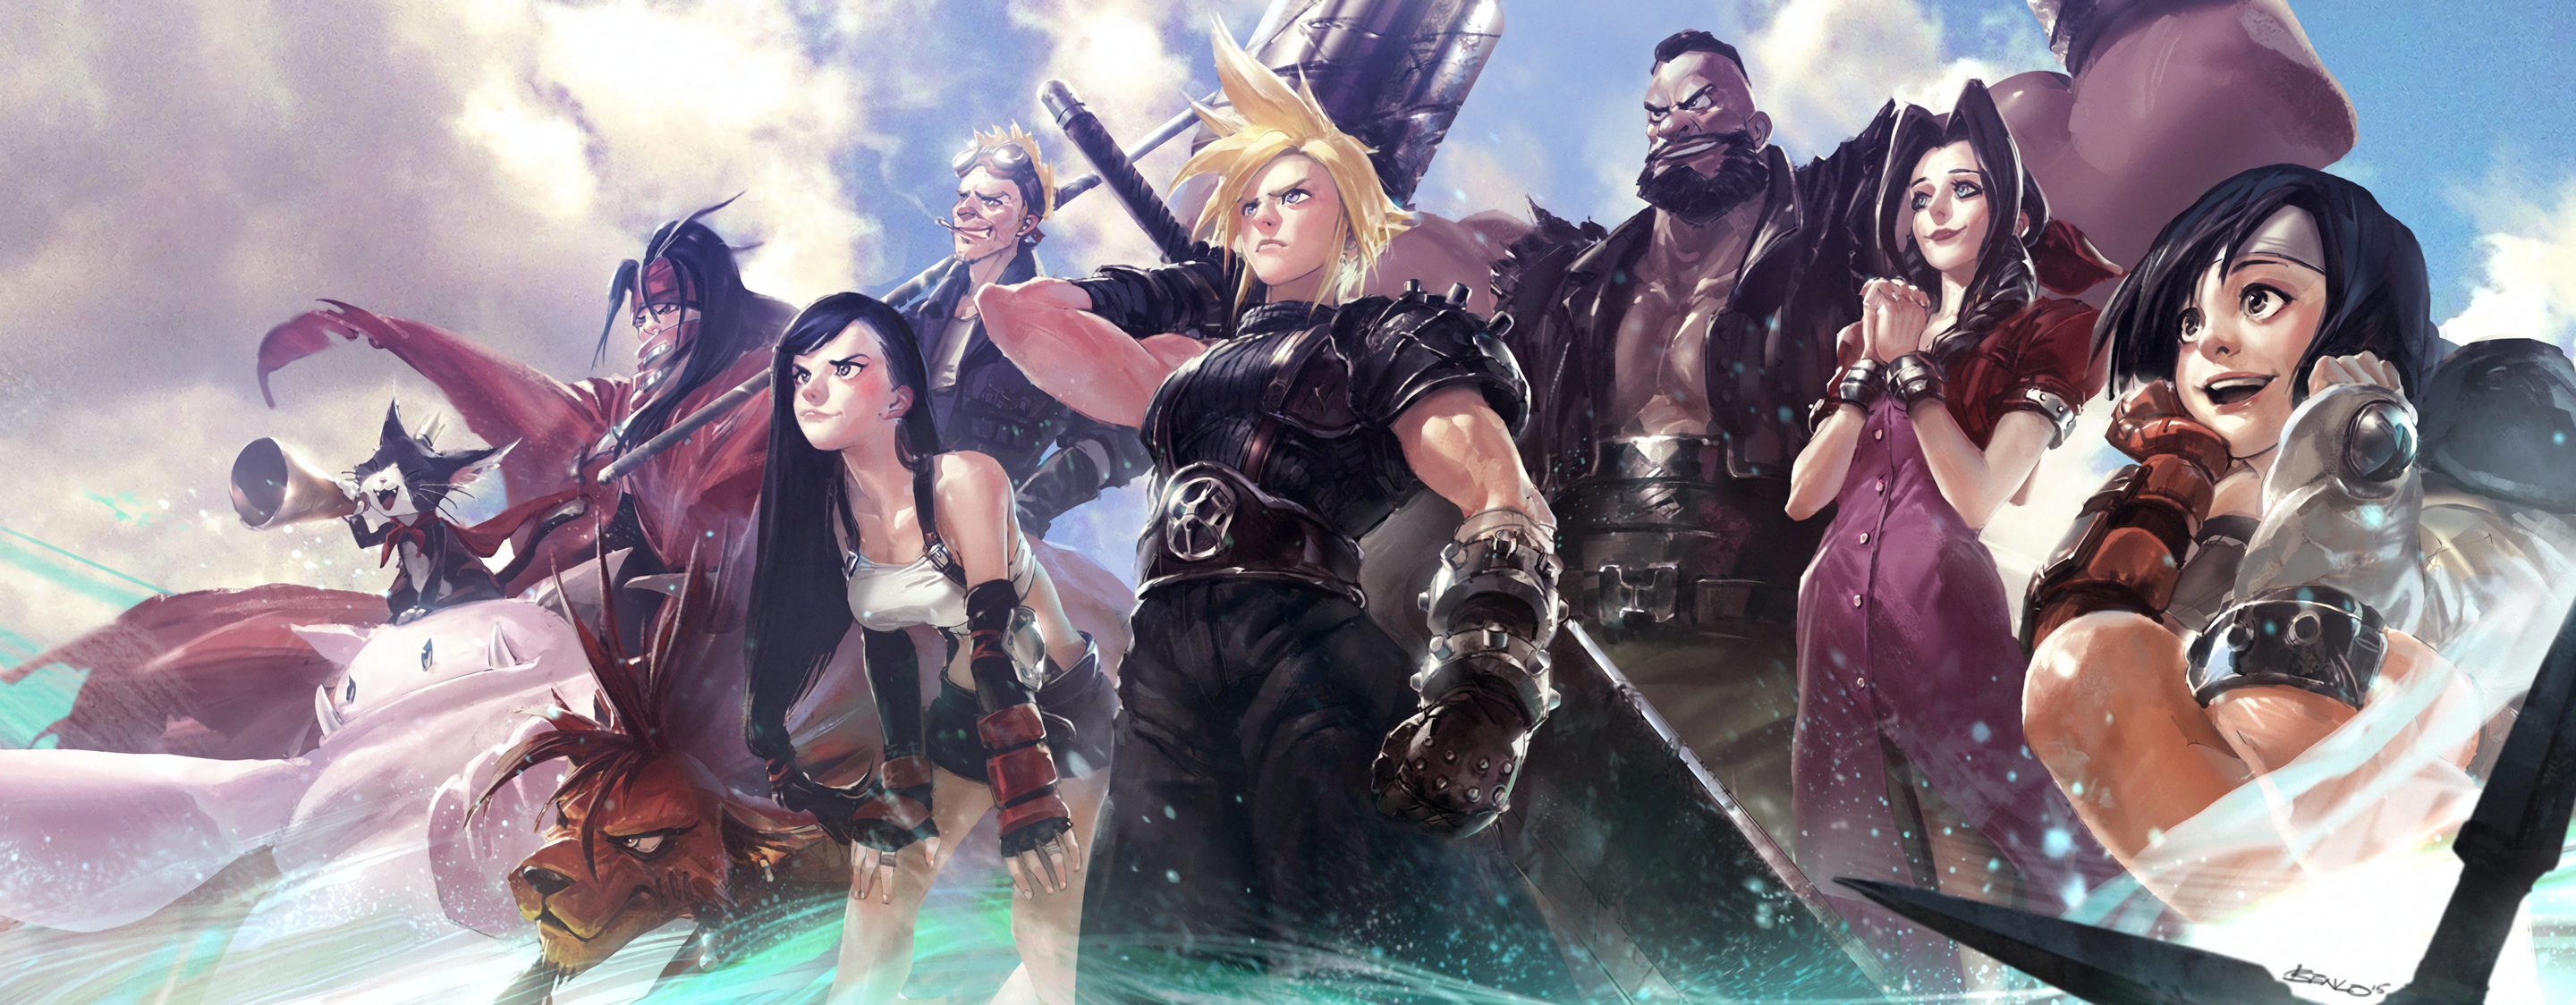 Final Fantasy VII HD Wallpaper Background Image 2880x1124 ID854138 Wallpaper Abyss